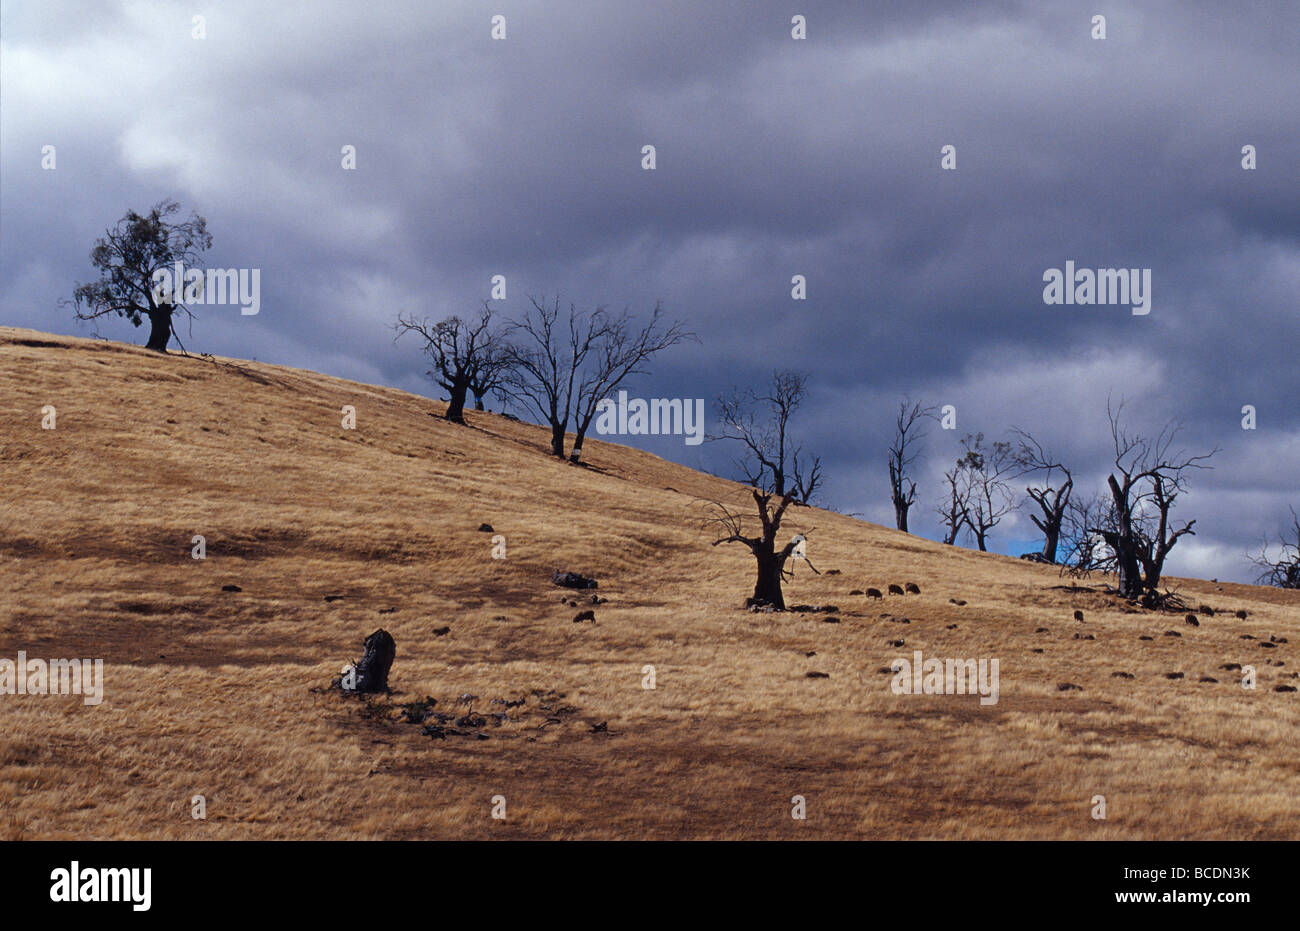 Farmland destroyed by drought, over grazing and erosion. - Stock Image